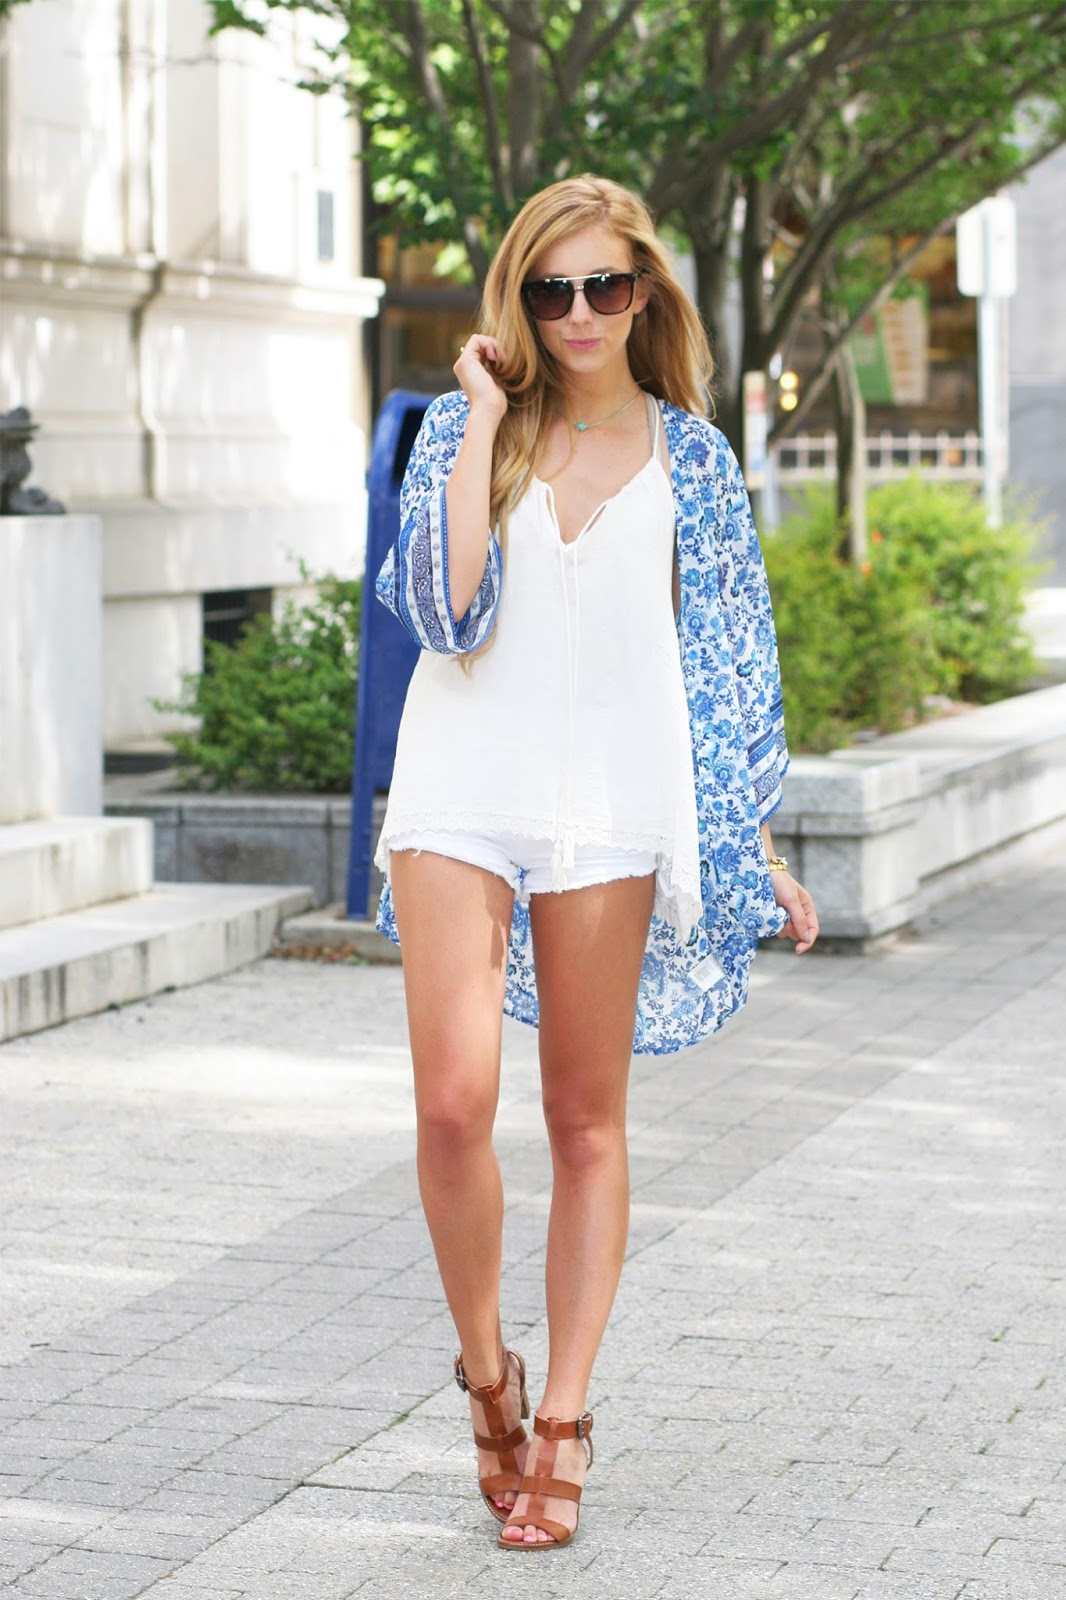 Summer-casual-street-style-floral-print-kimono-and-all-white